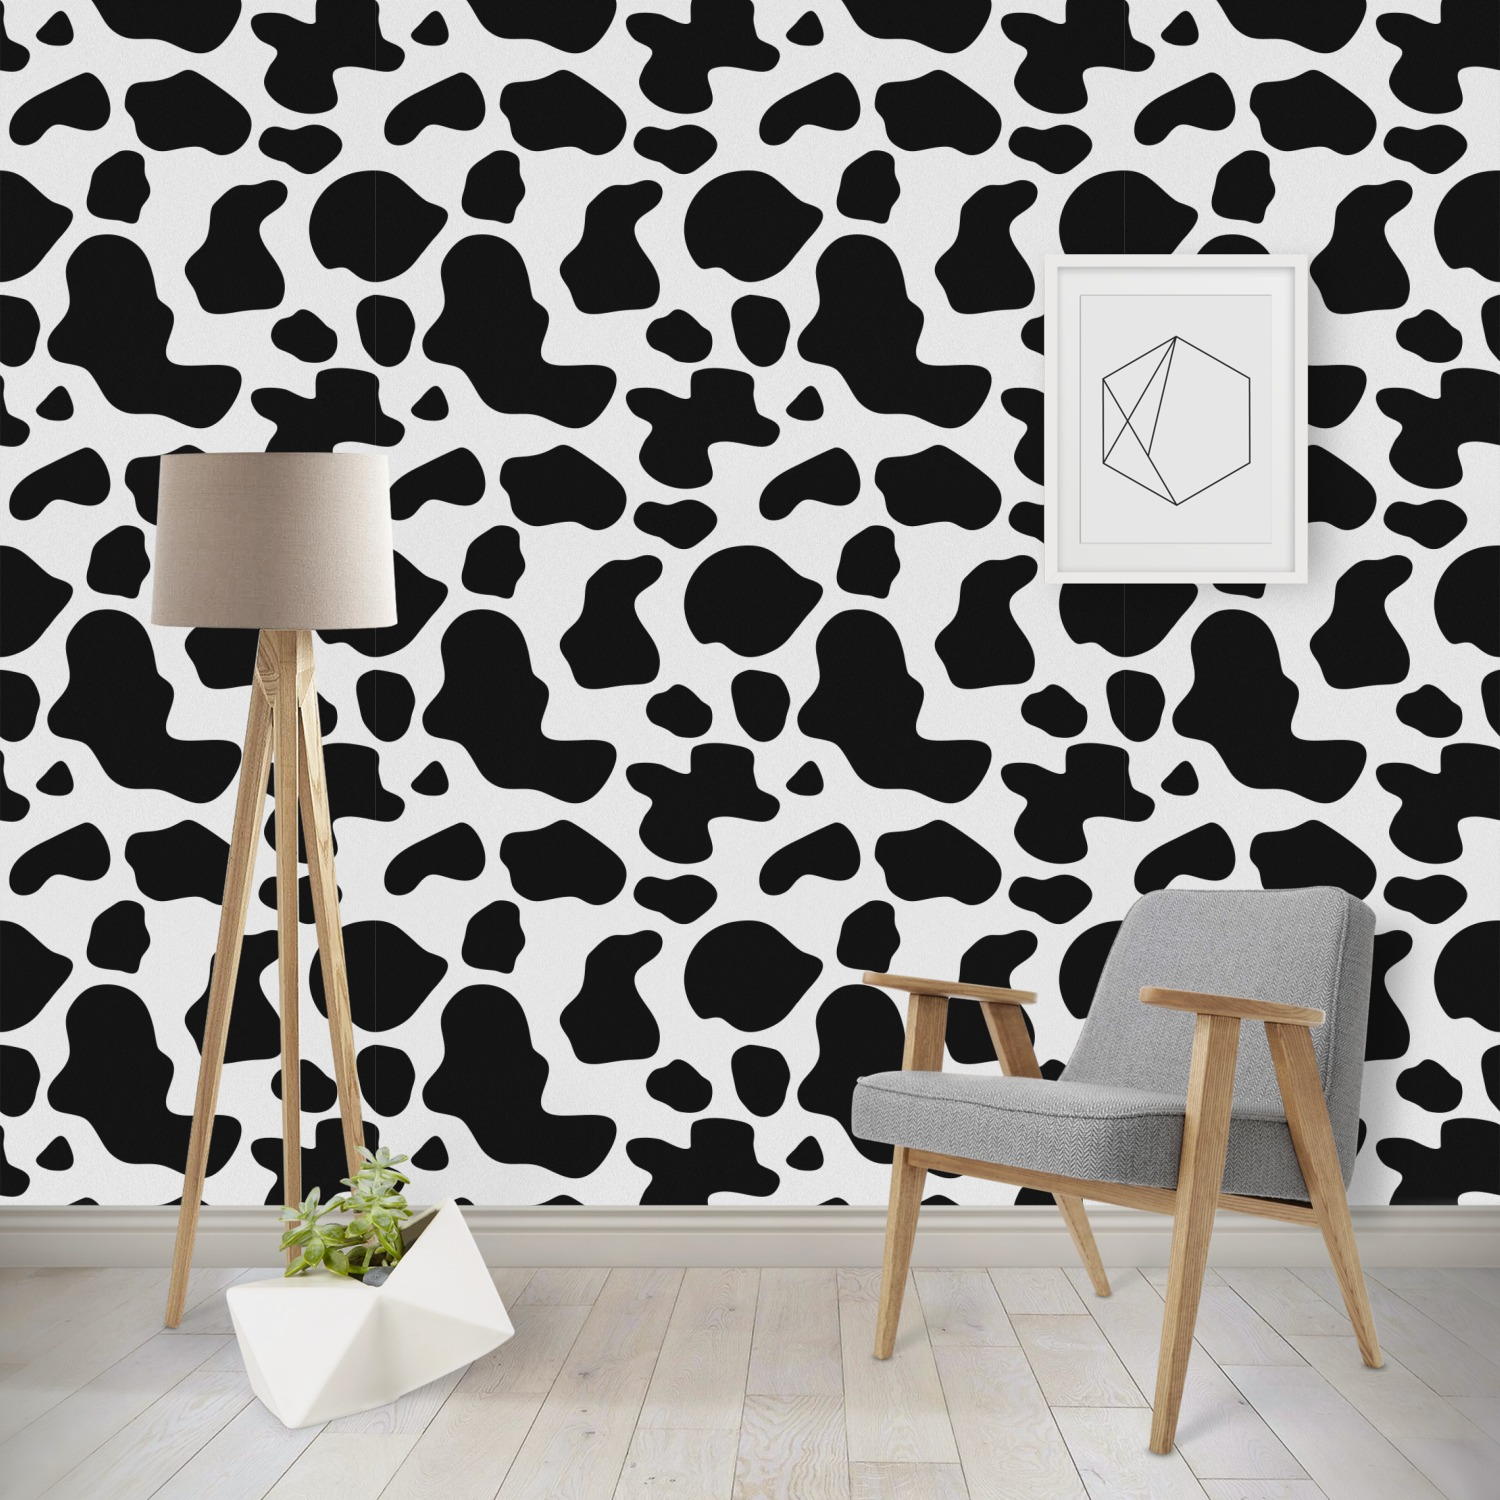 Cowprint W Cowboy Wallpaper Surface Covering Peel Stick Repositionable Youcustomizeit